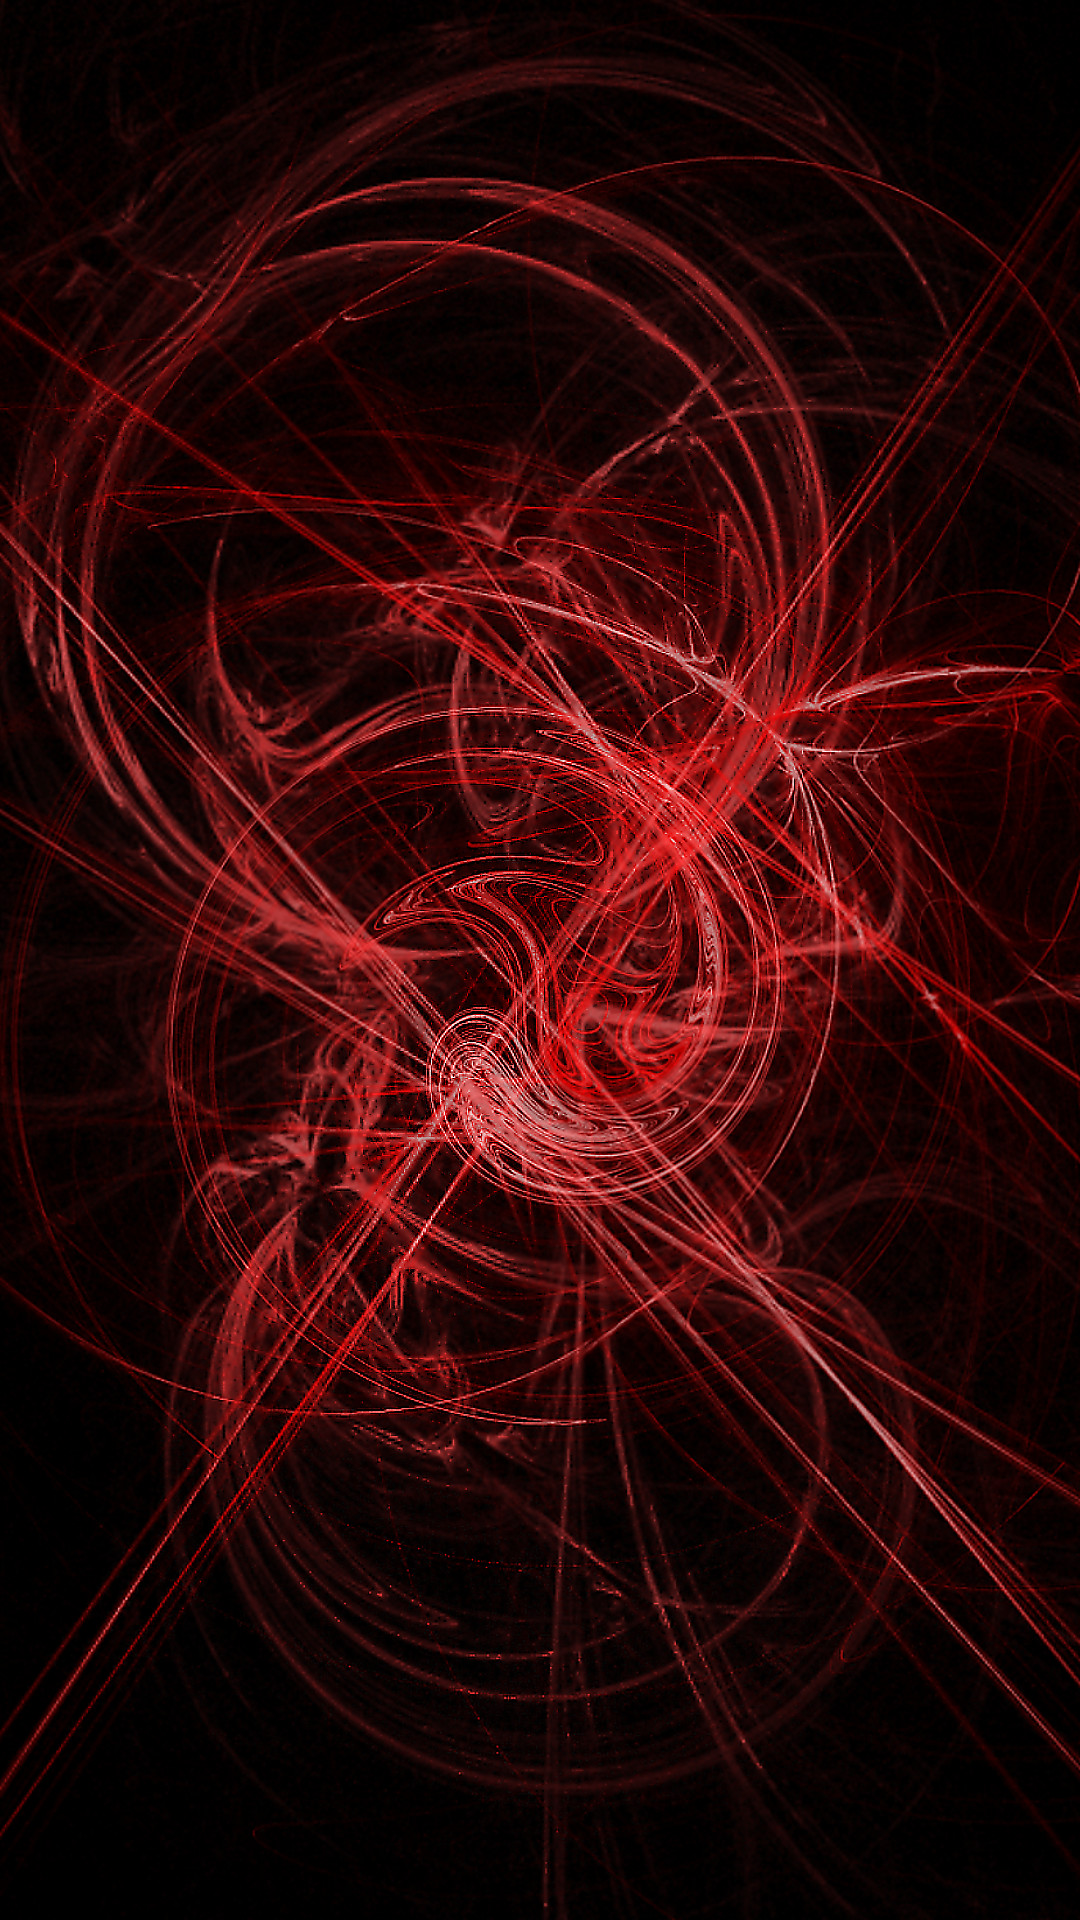 1080x1920, Red Abstract Phone Wallpaper By Fun Playyer7 - Wallpaper - HD Wallpaper